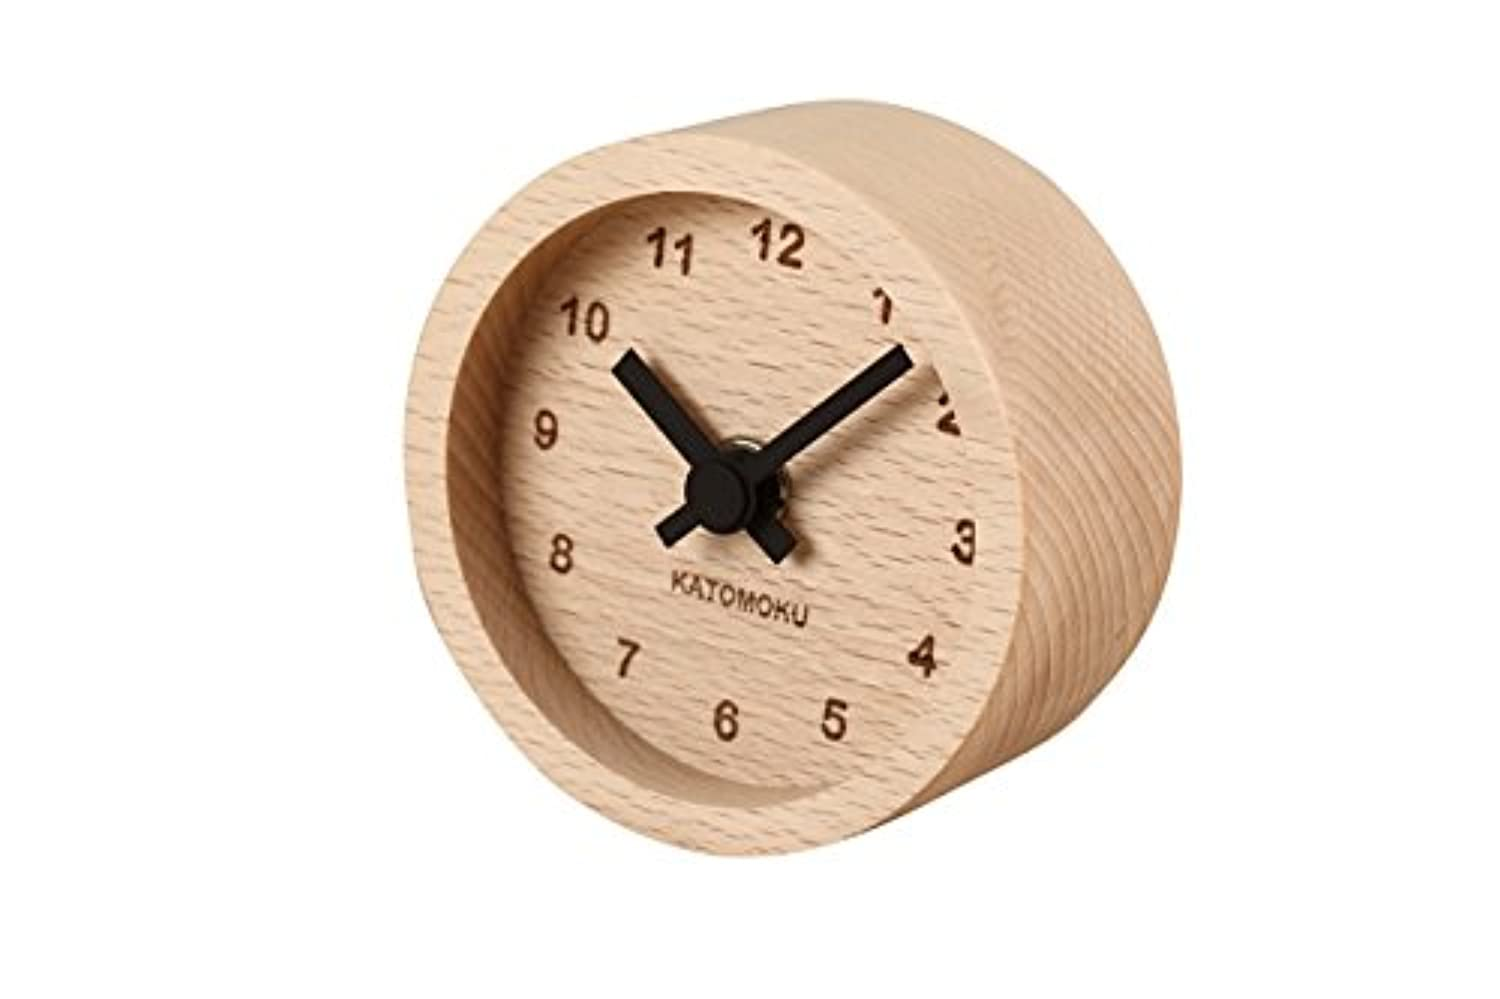 KATOMOKU muku mini clock km-26 丸 黒 木 ビーチ